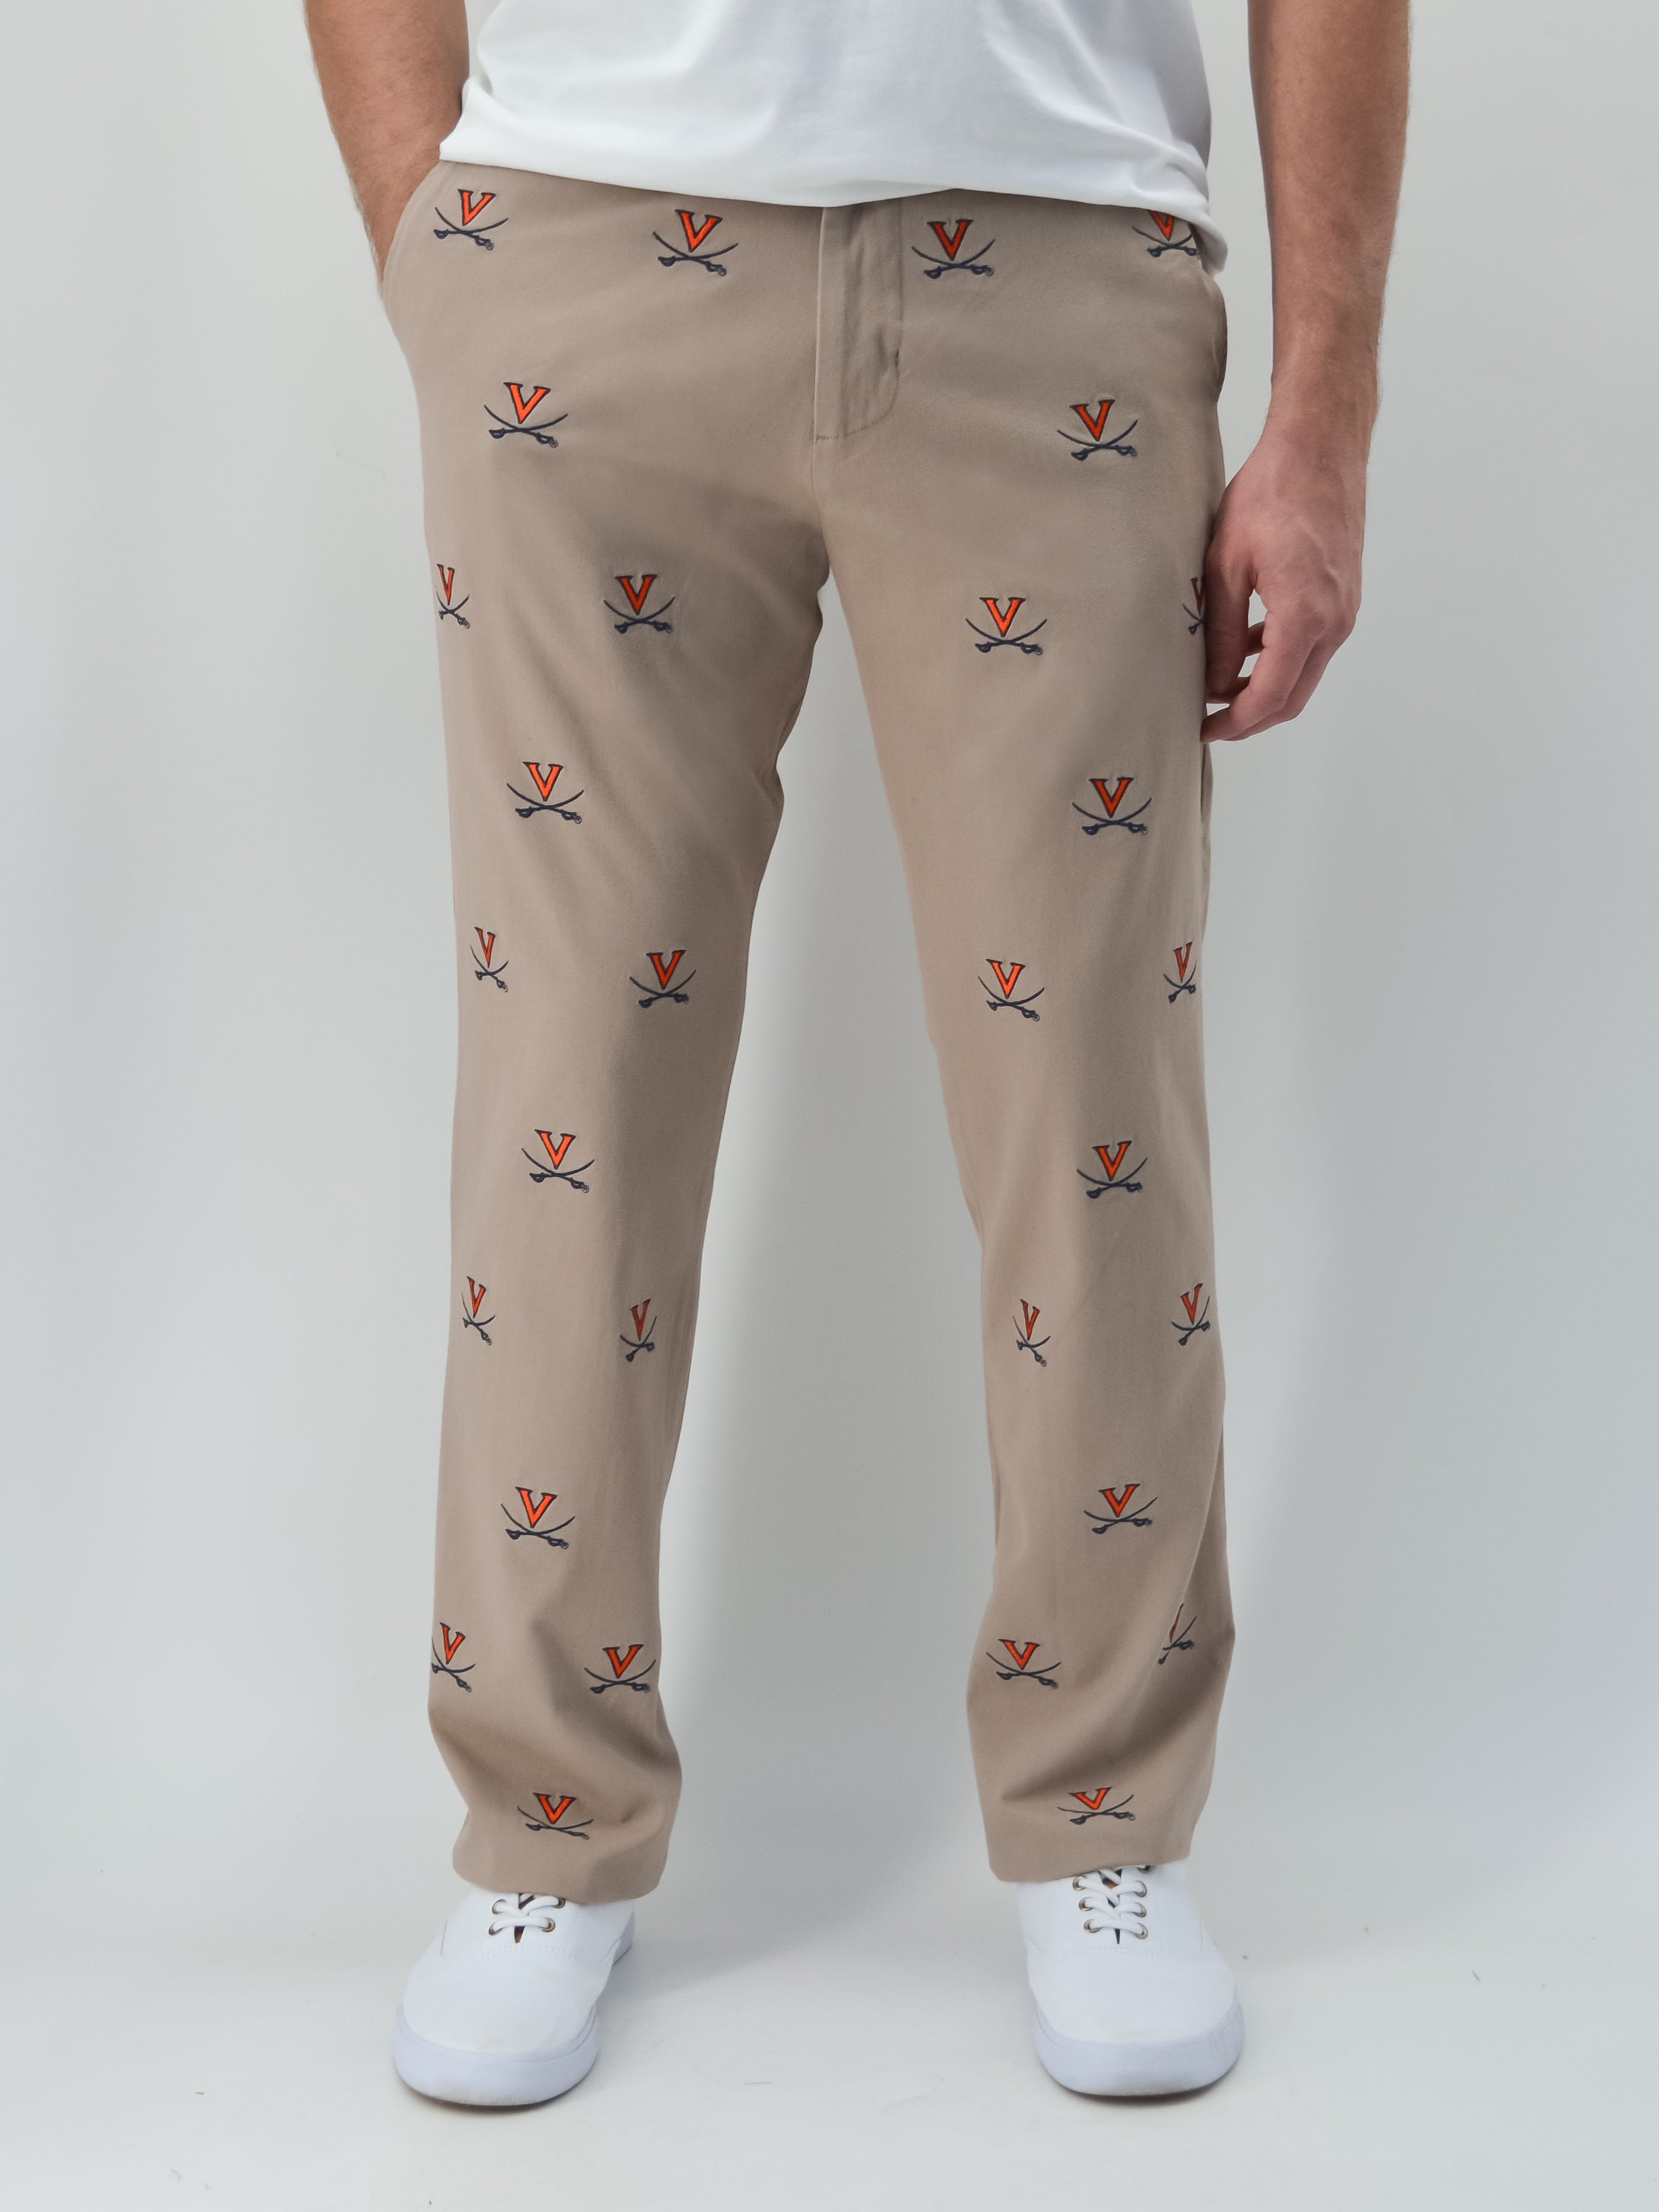 University of Virginia Khaki Pants